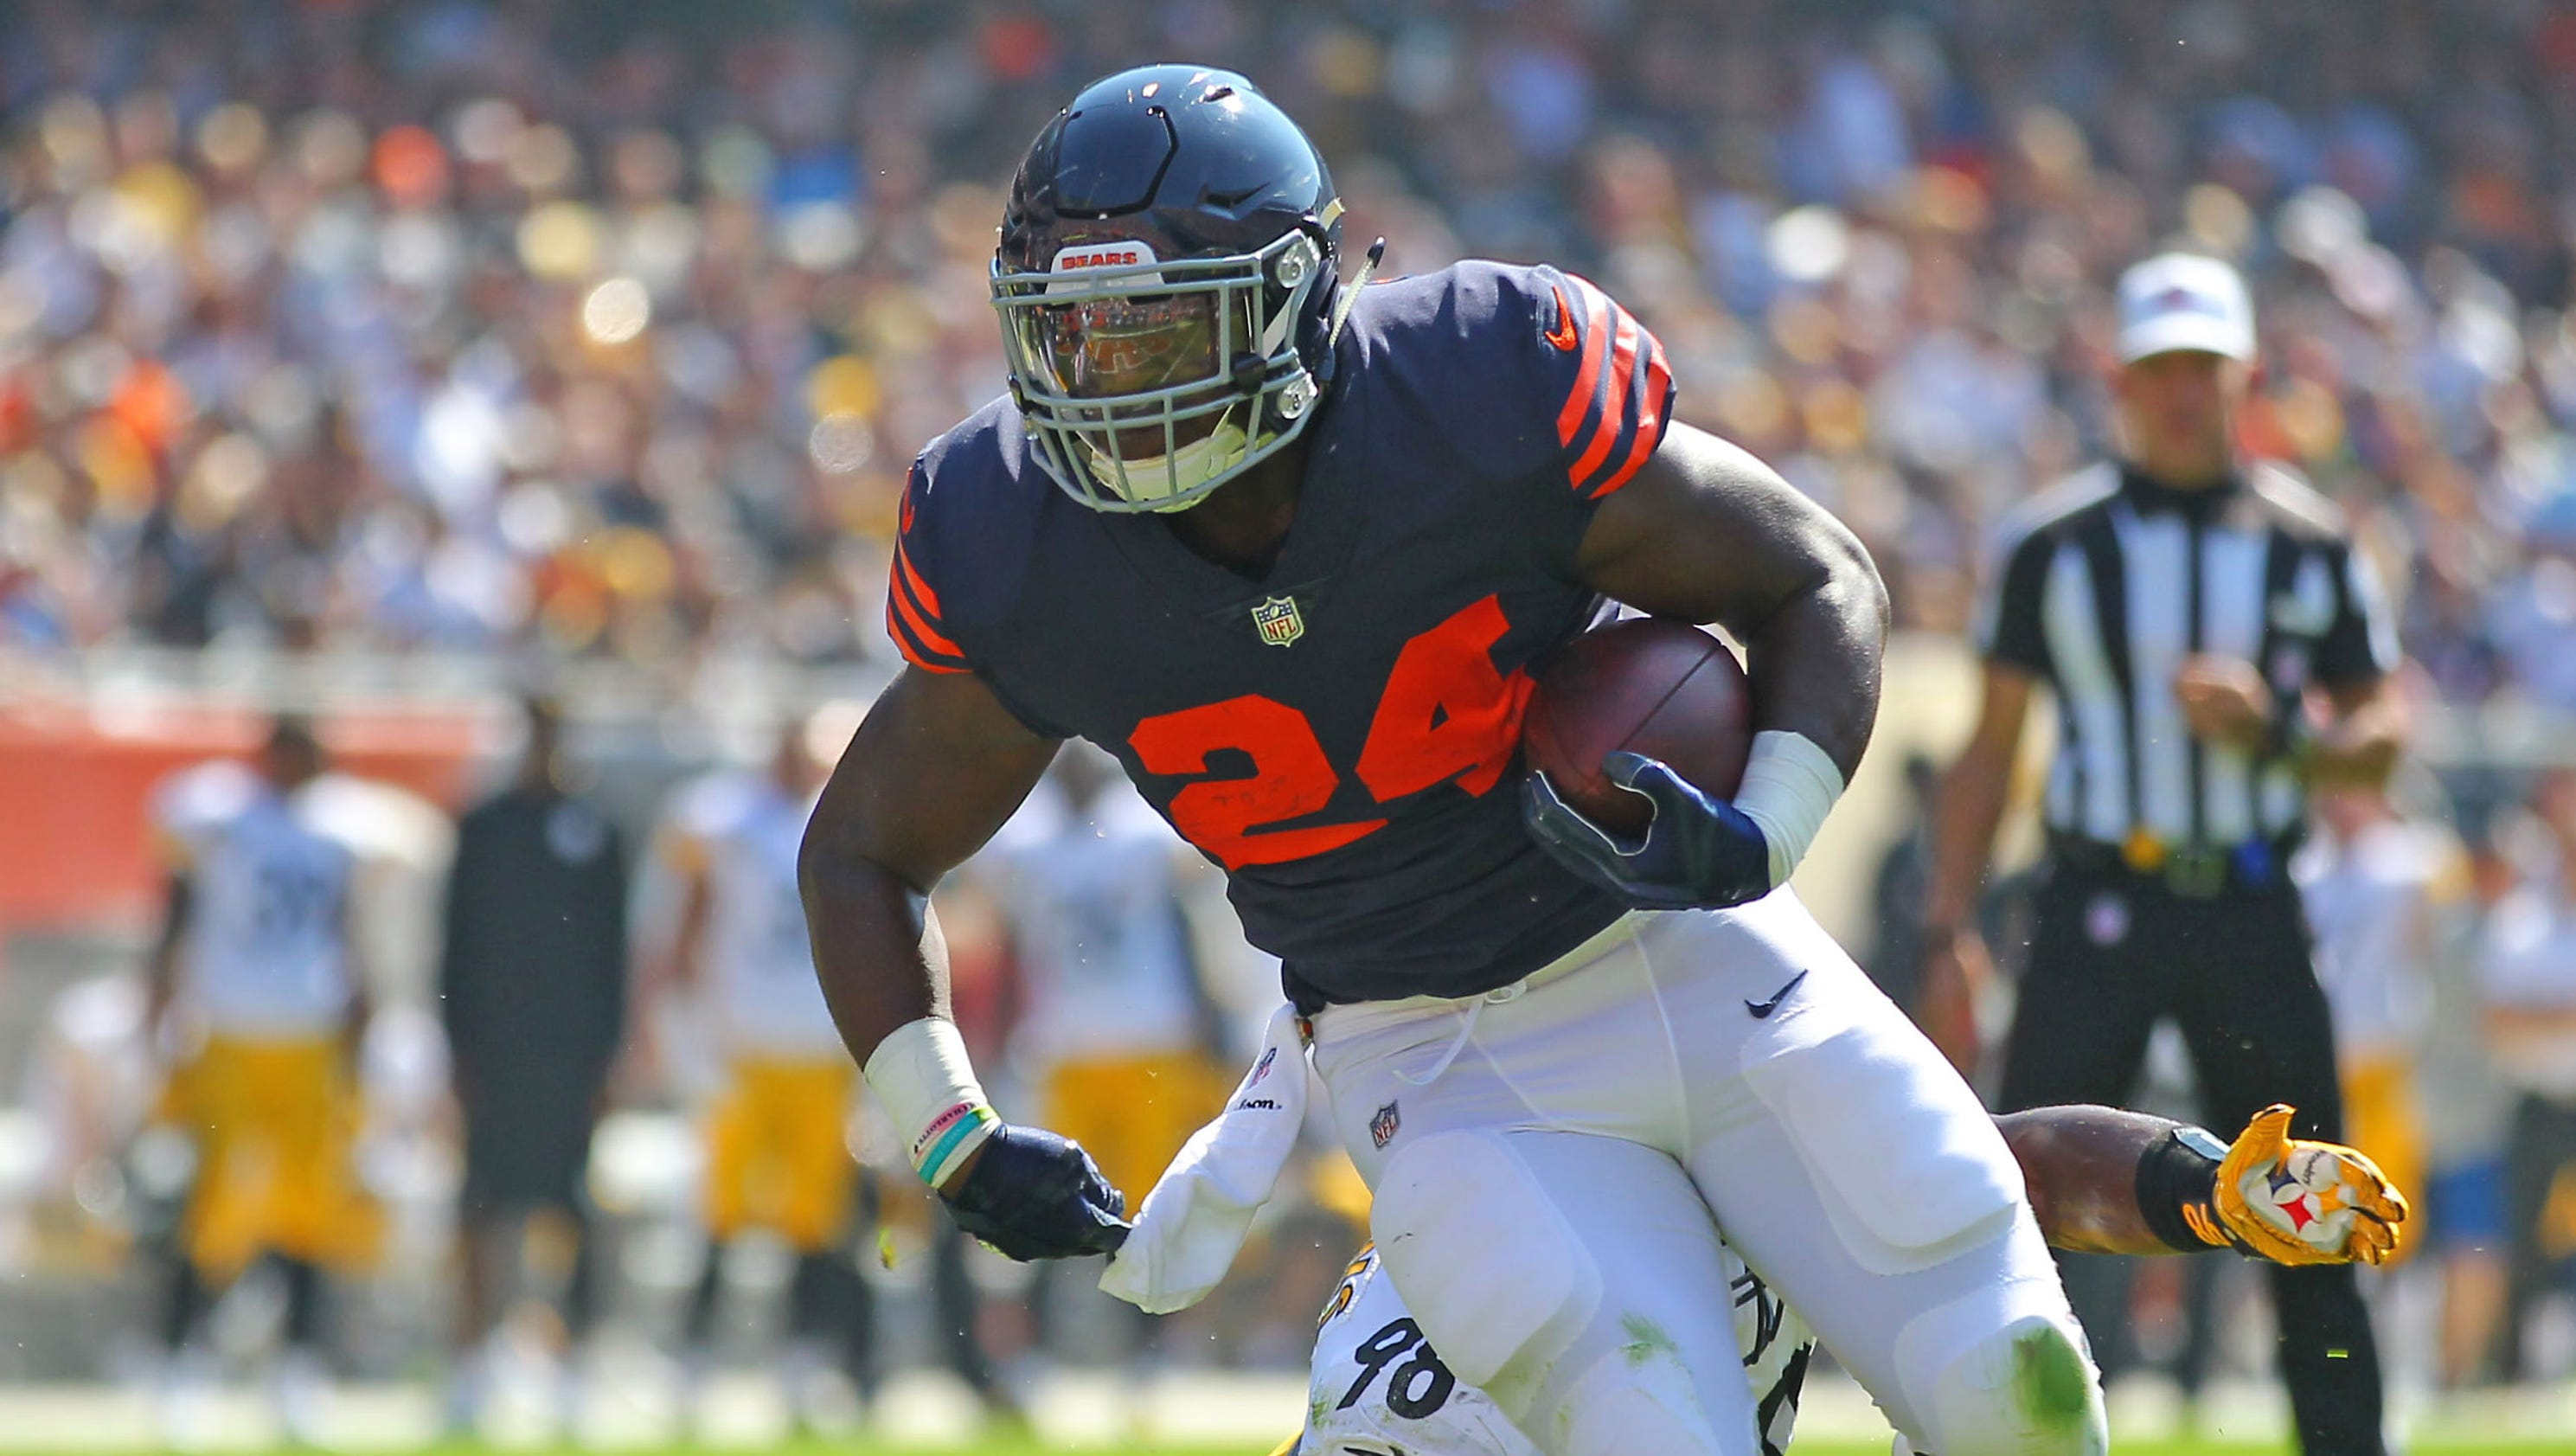 636646548424220942-usp-nfl-pittsburgh-steelers-at-chicago-bears-94057634